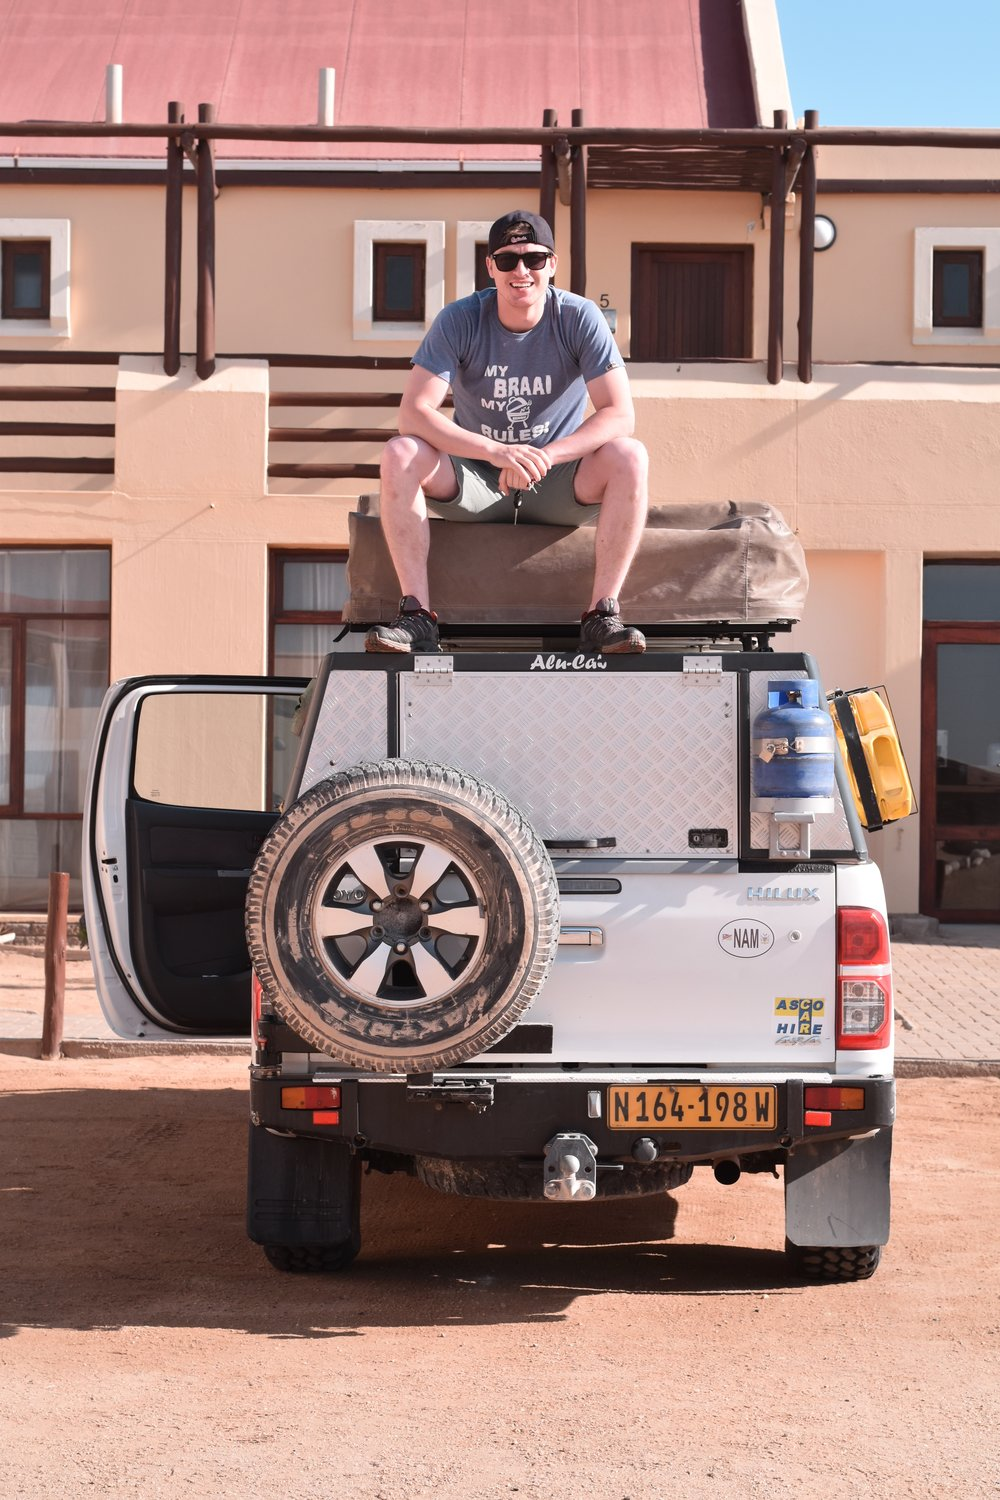 Taking a break from unloading the truck after a long day of driving up the Skeleton Coast.  Cape Cross, Namibia - 2016